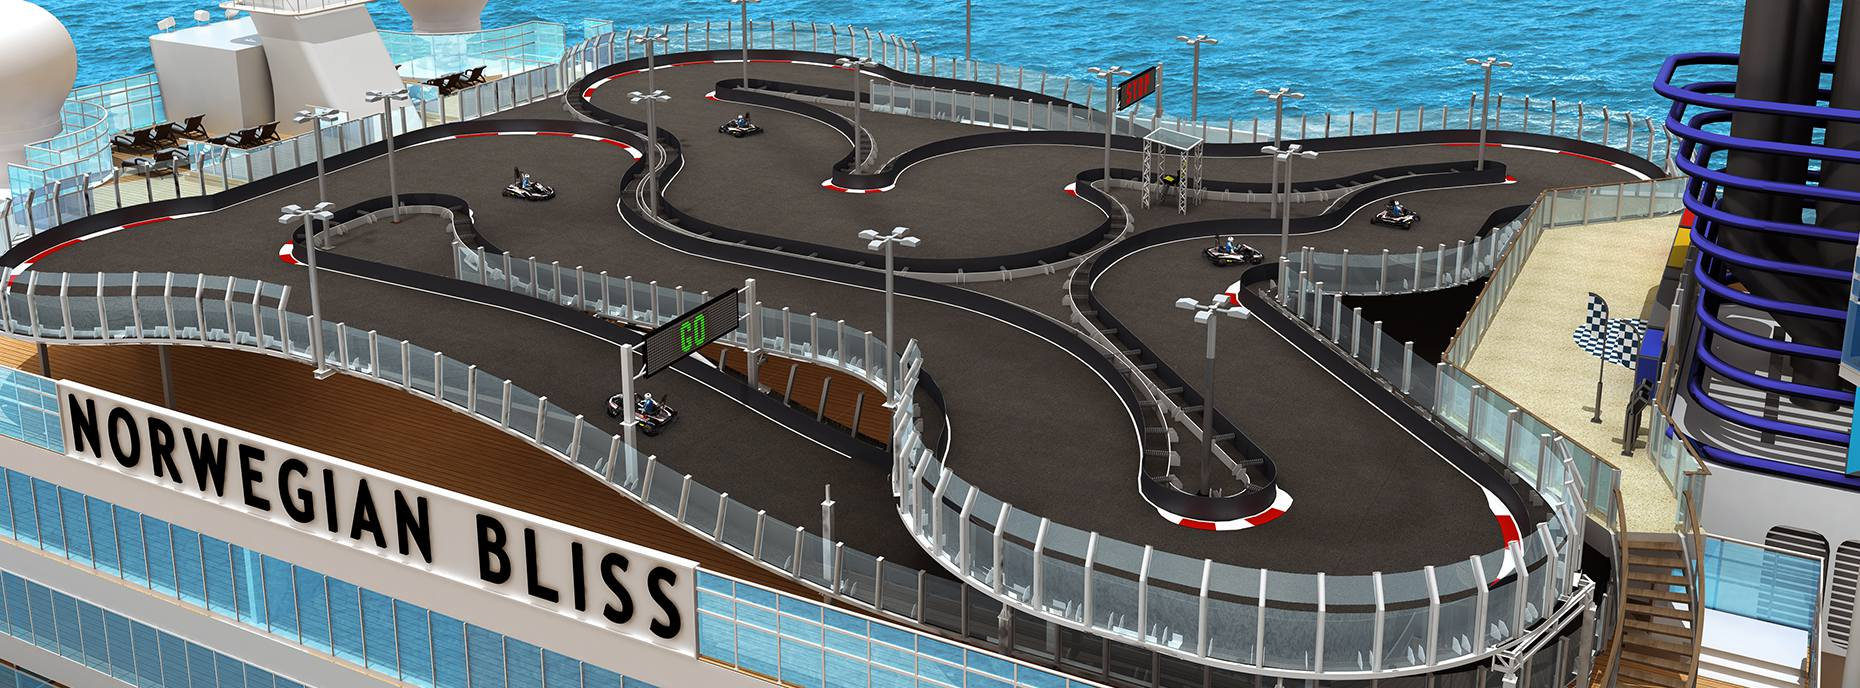 Norwegian Bliss Racetrack